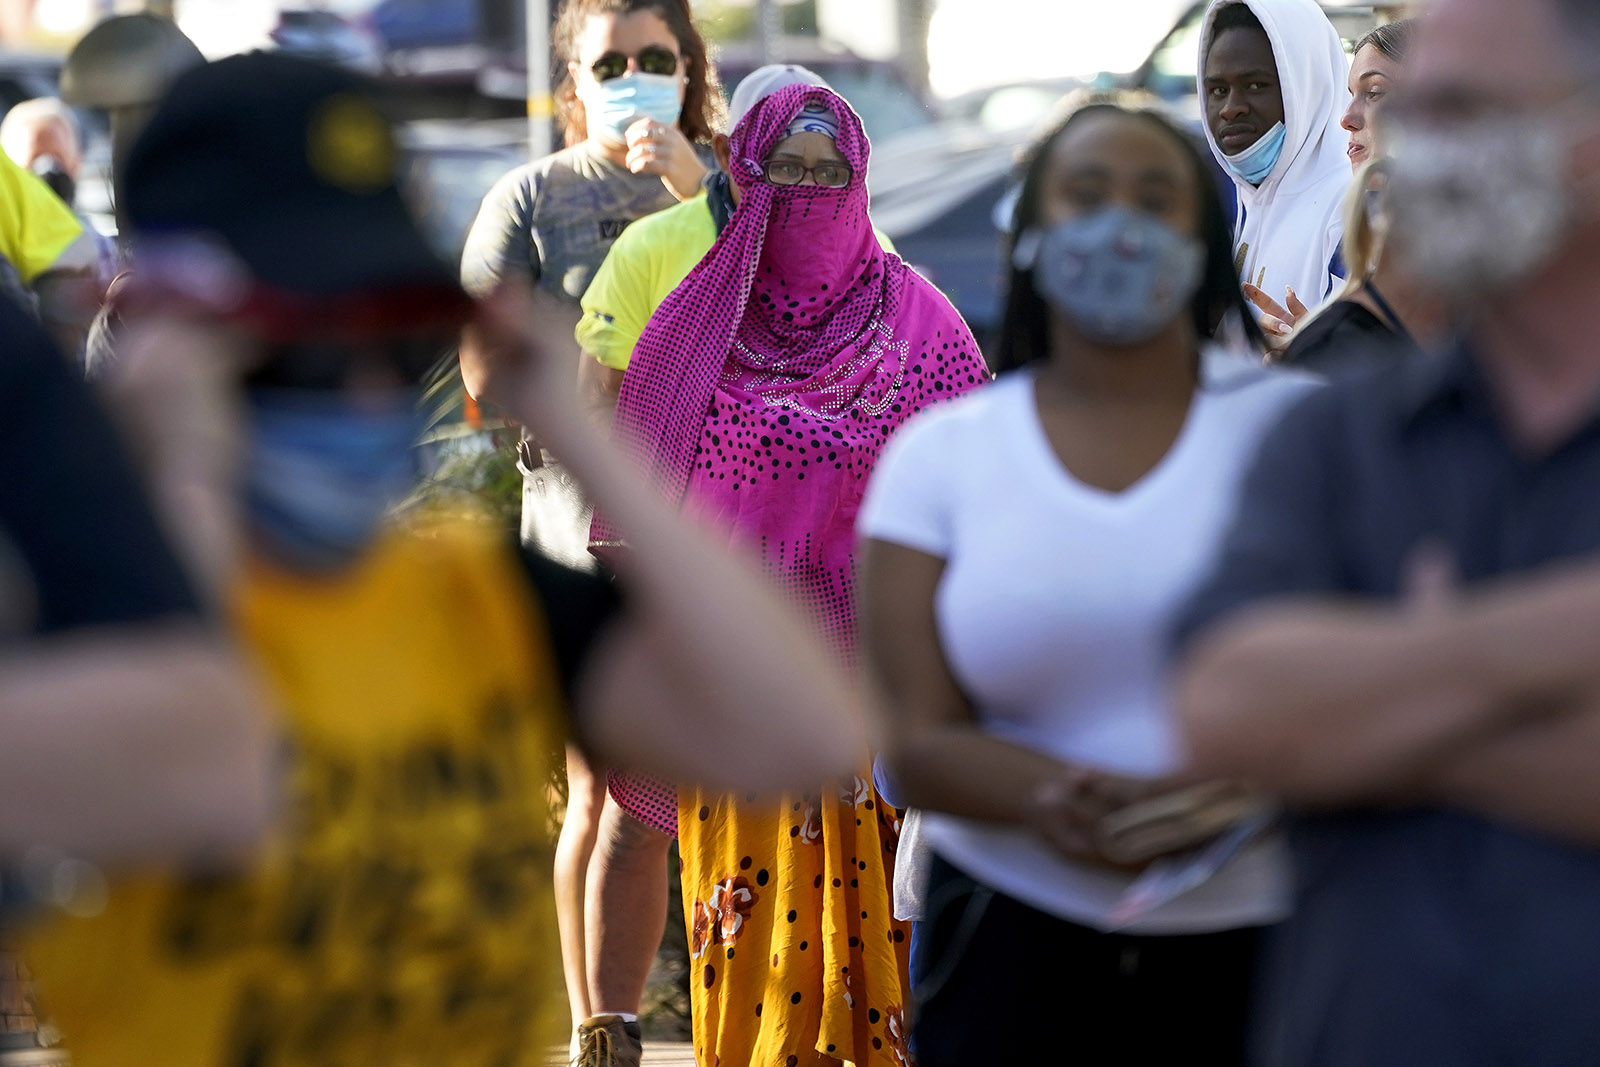 Voters wait in line outside a polling station, Tuesday, Nov. 3, 2020, in Tempe, Arizona.